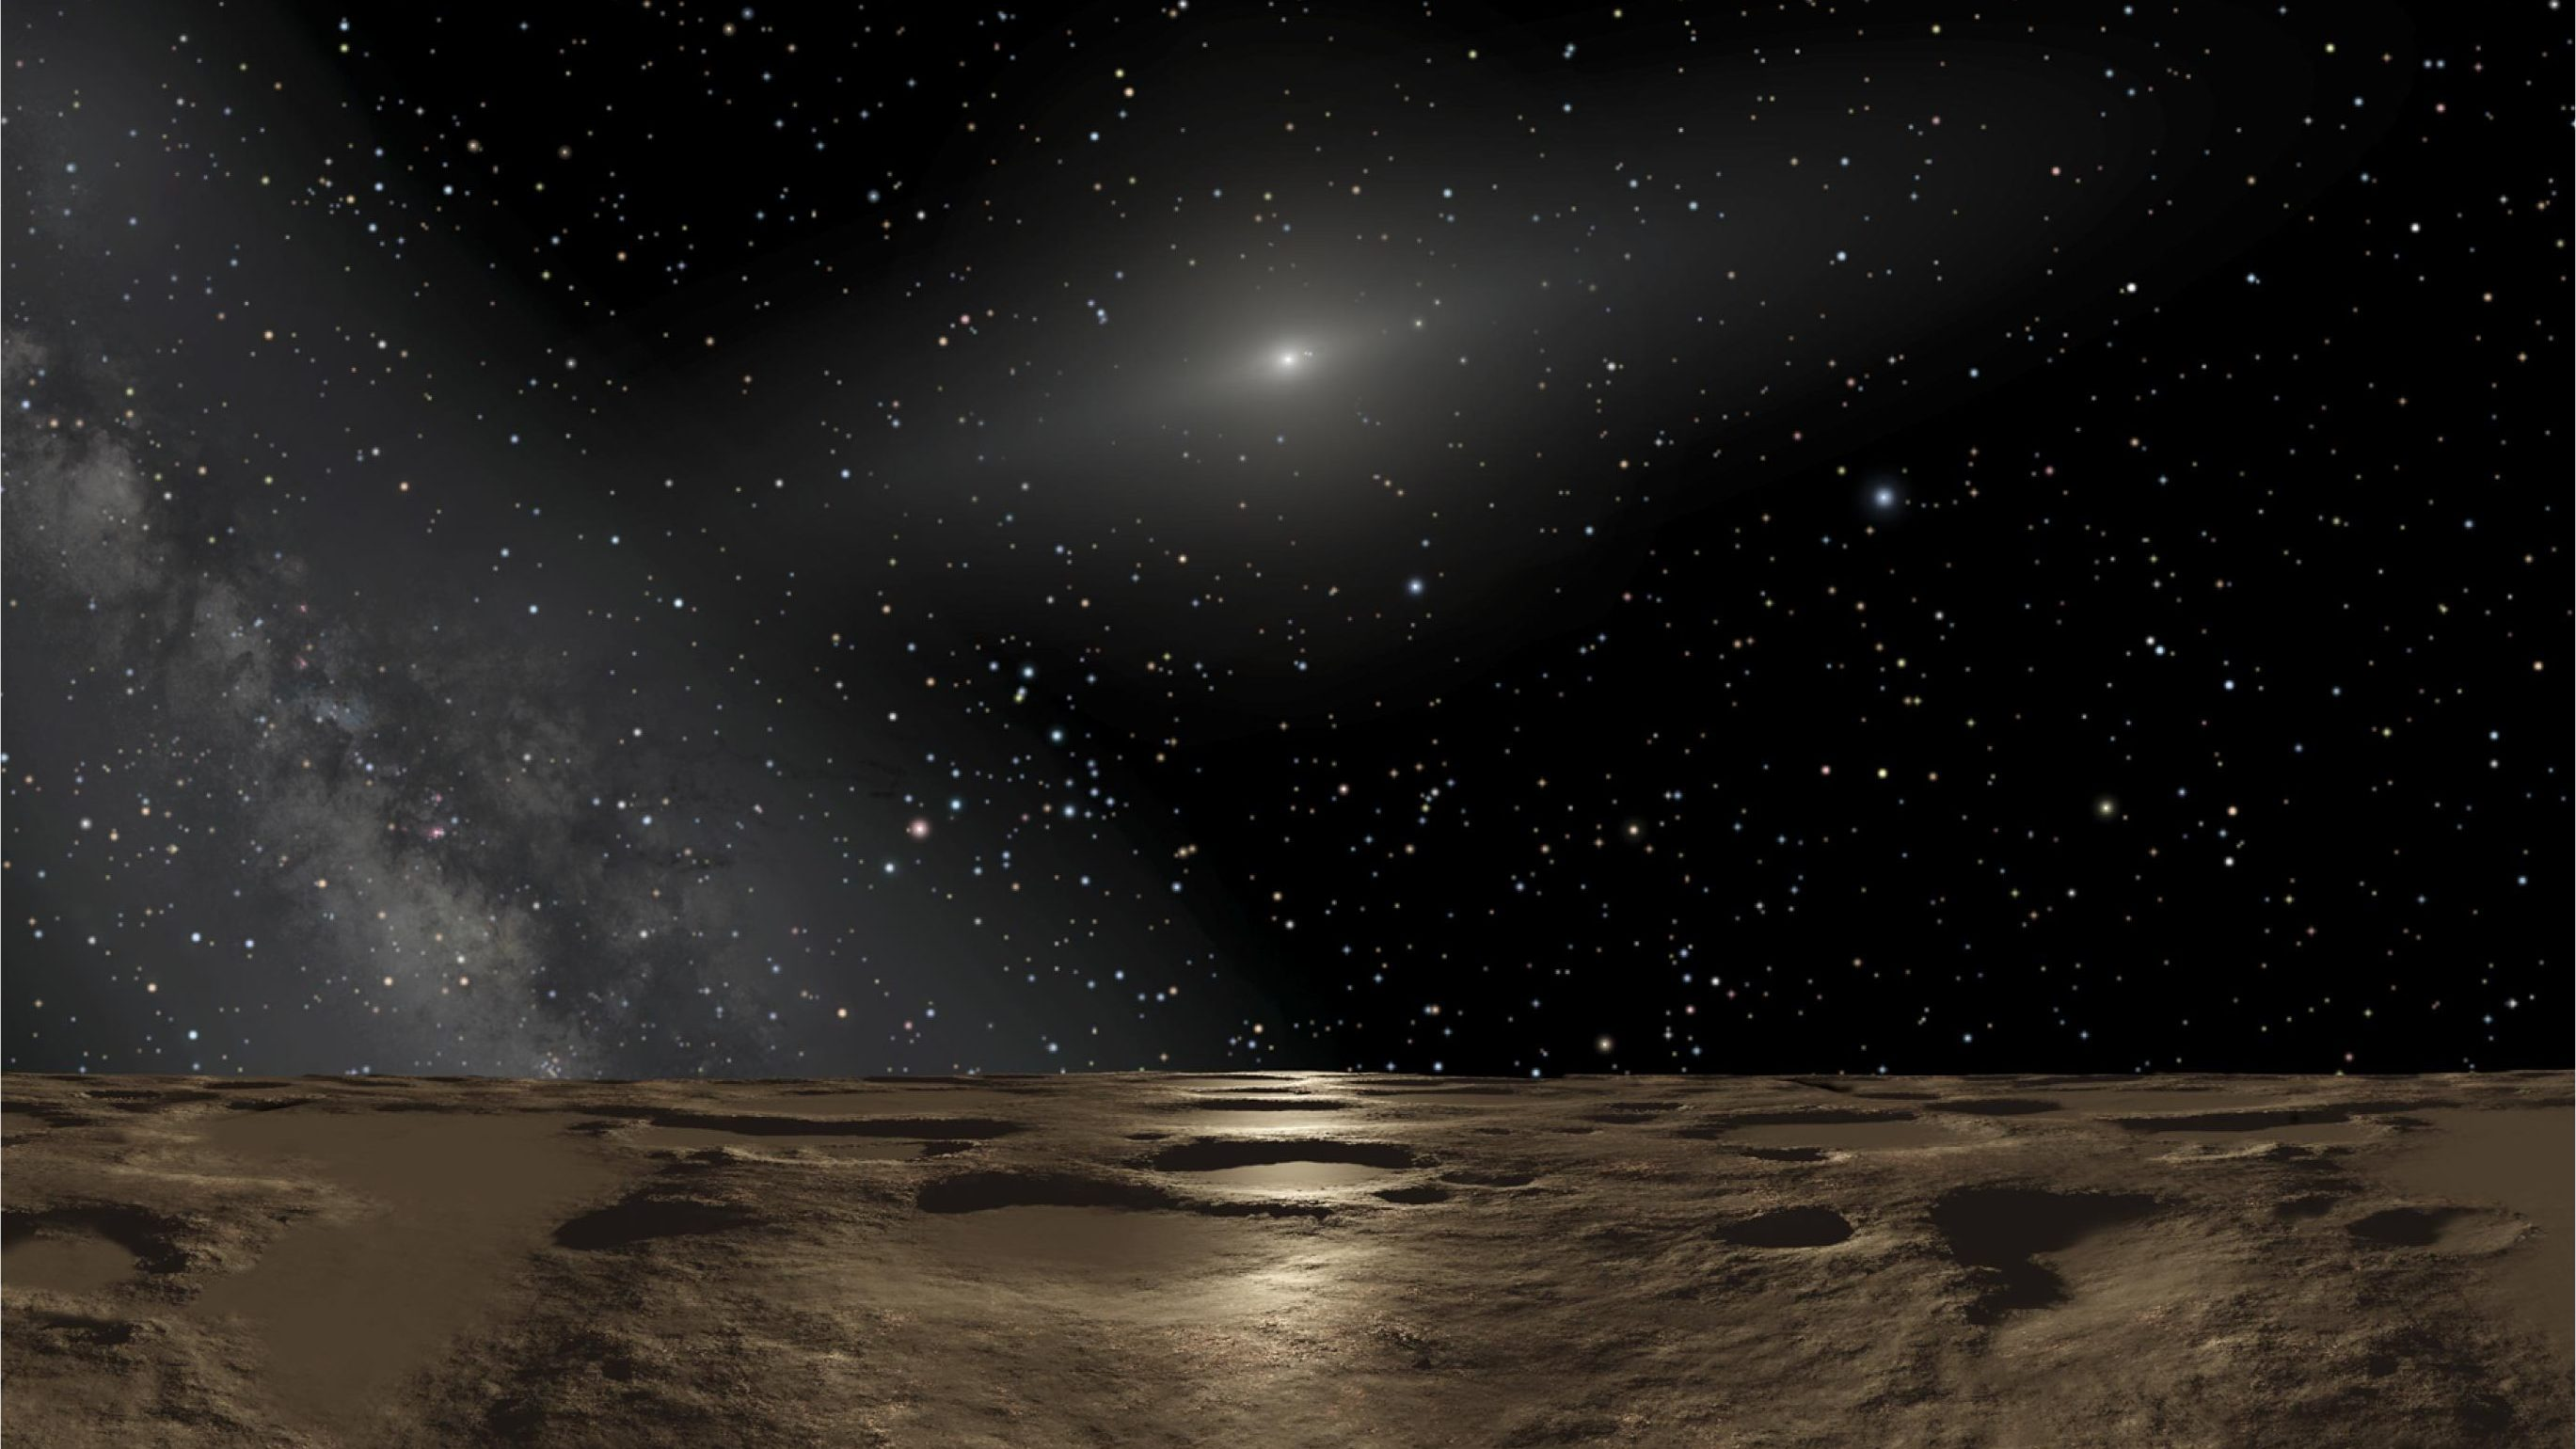 A Friend For Pluto: Astronomers Find New Dwarf Planet In Our Solar System